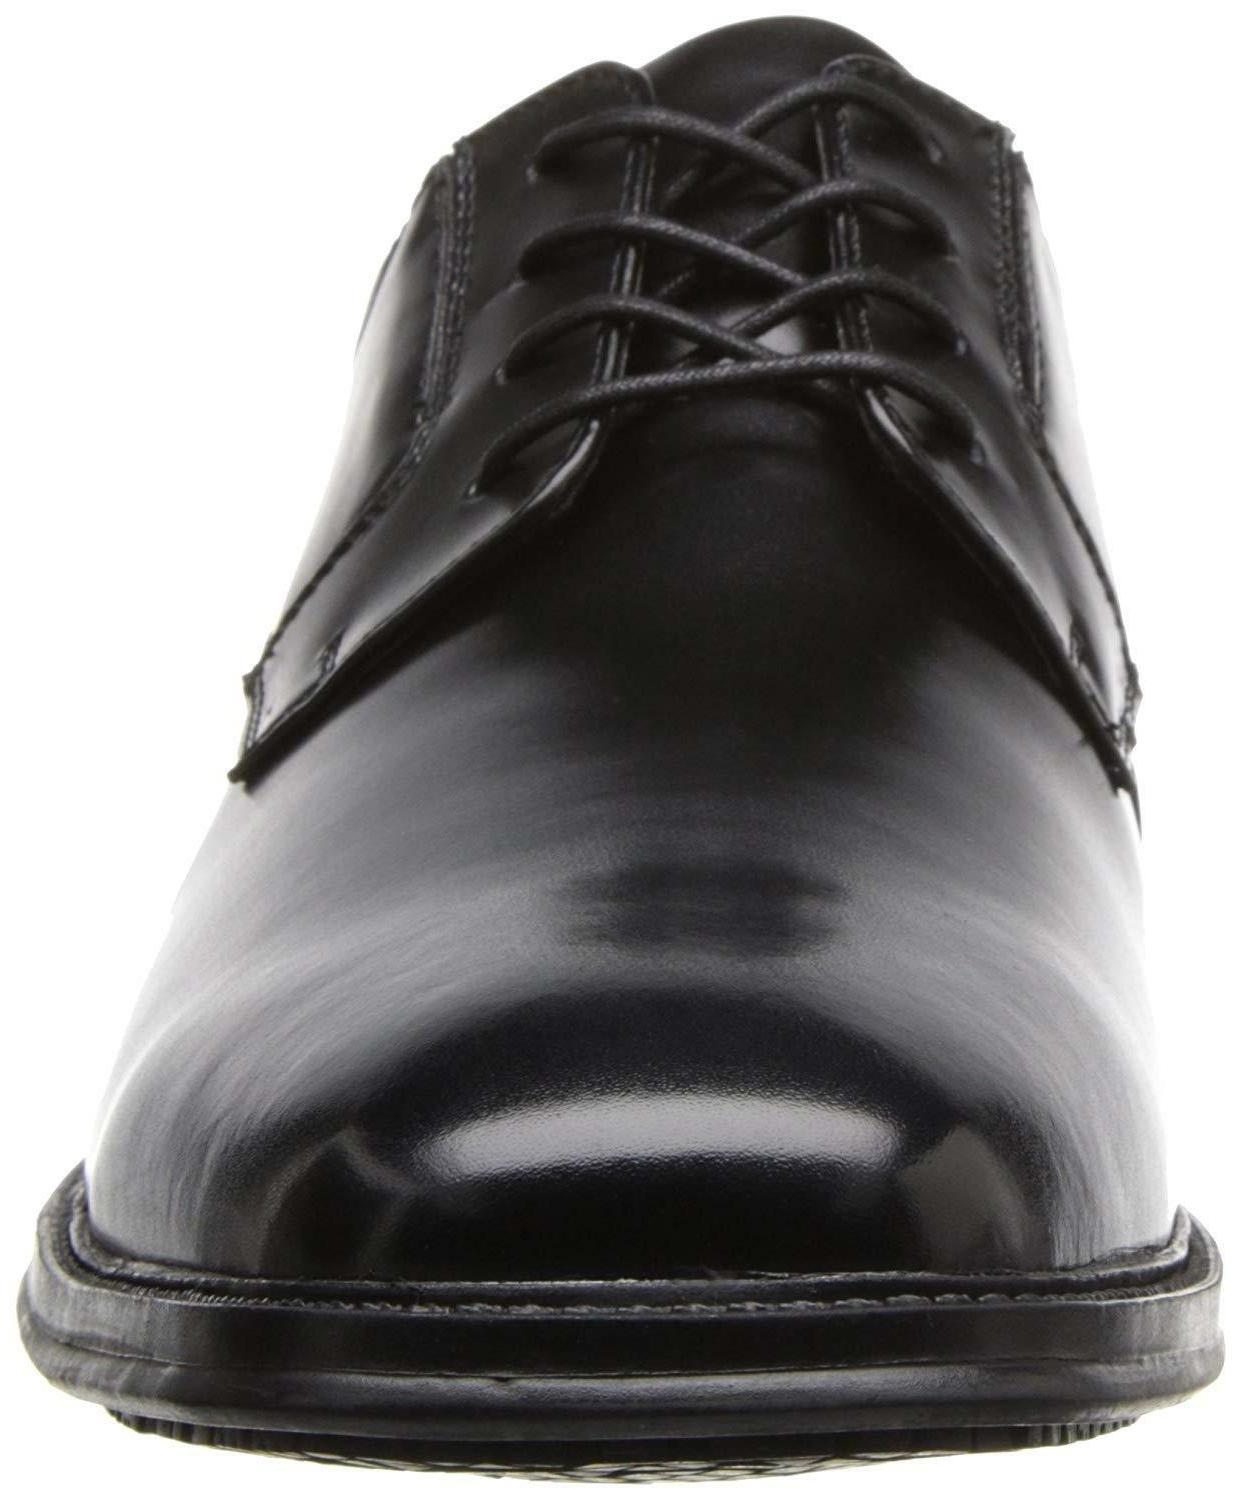 Dockers Slip-Resistant Work Shoe, Black,